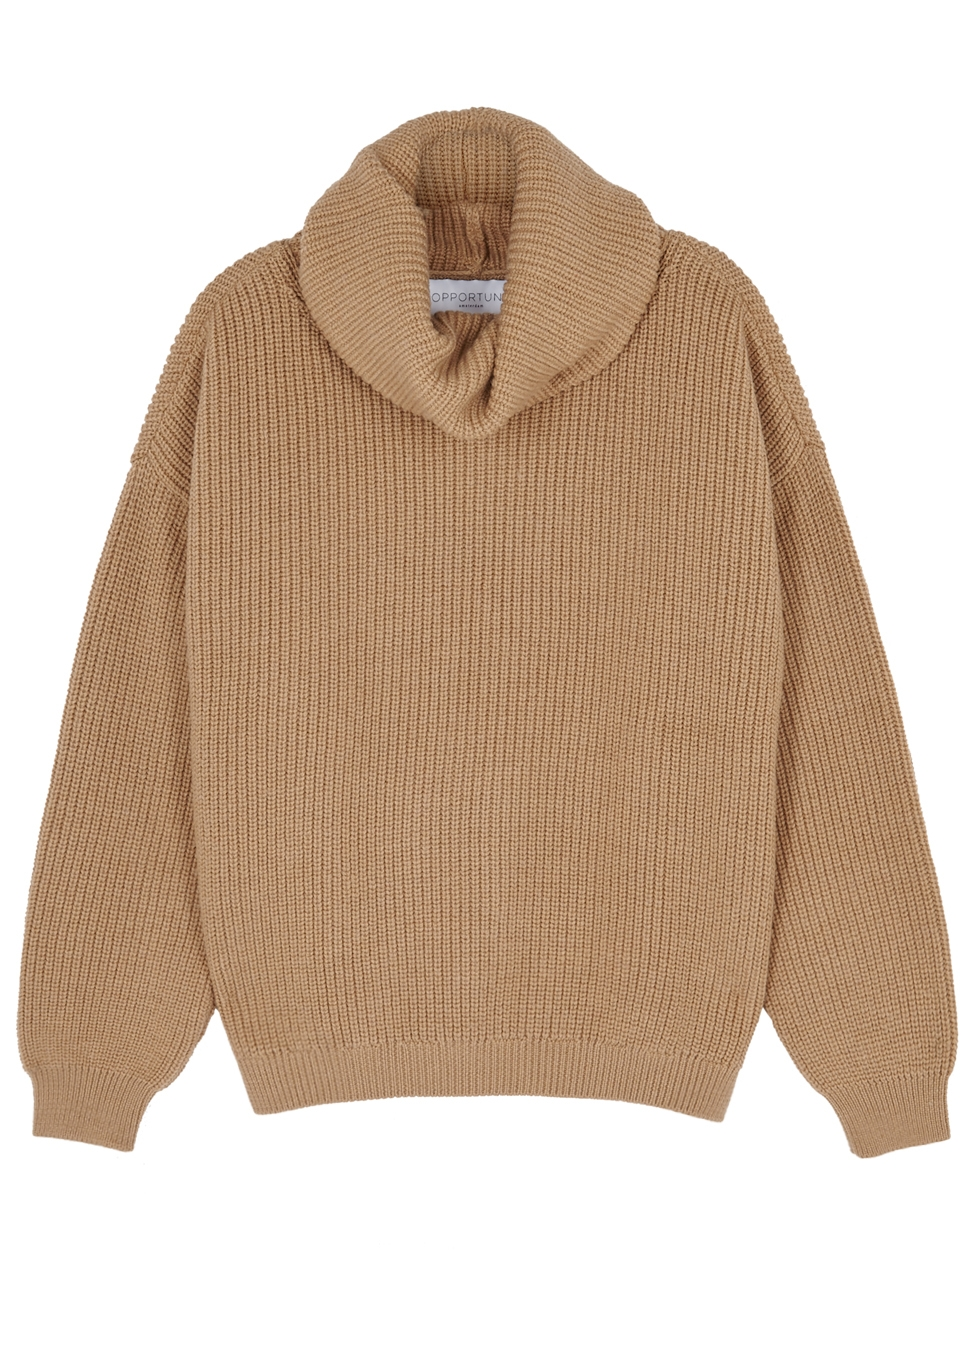 OPPORTUNO Kora Roll-Neck Wool Jumper in Beige